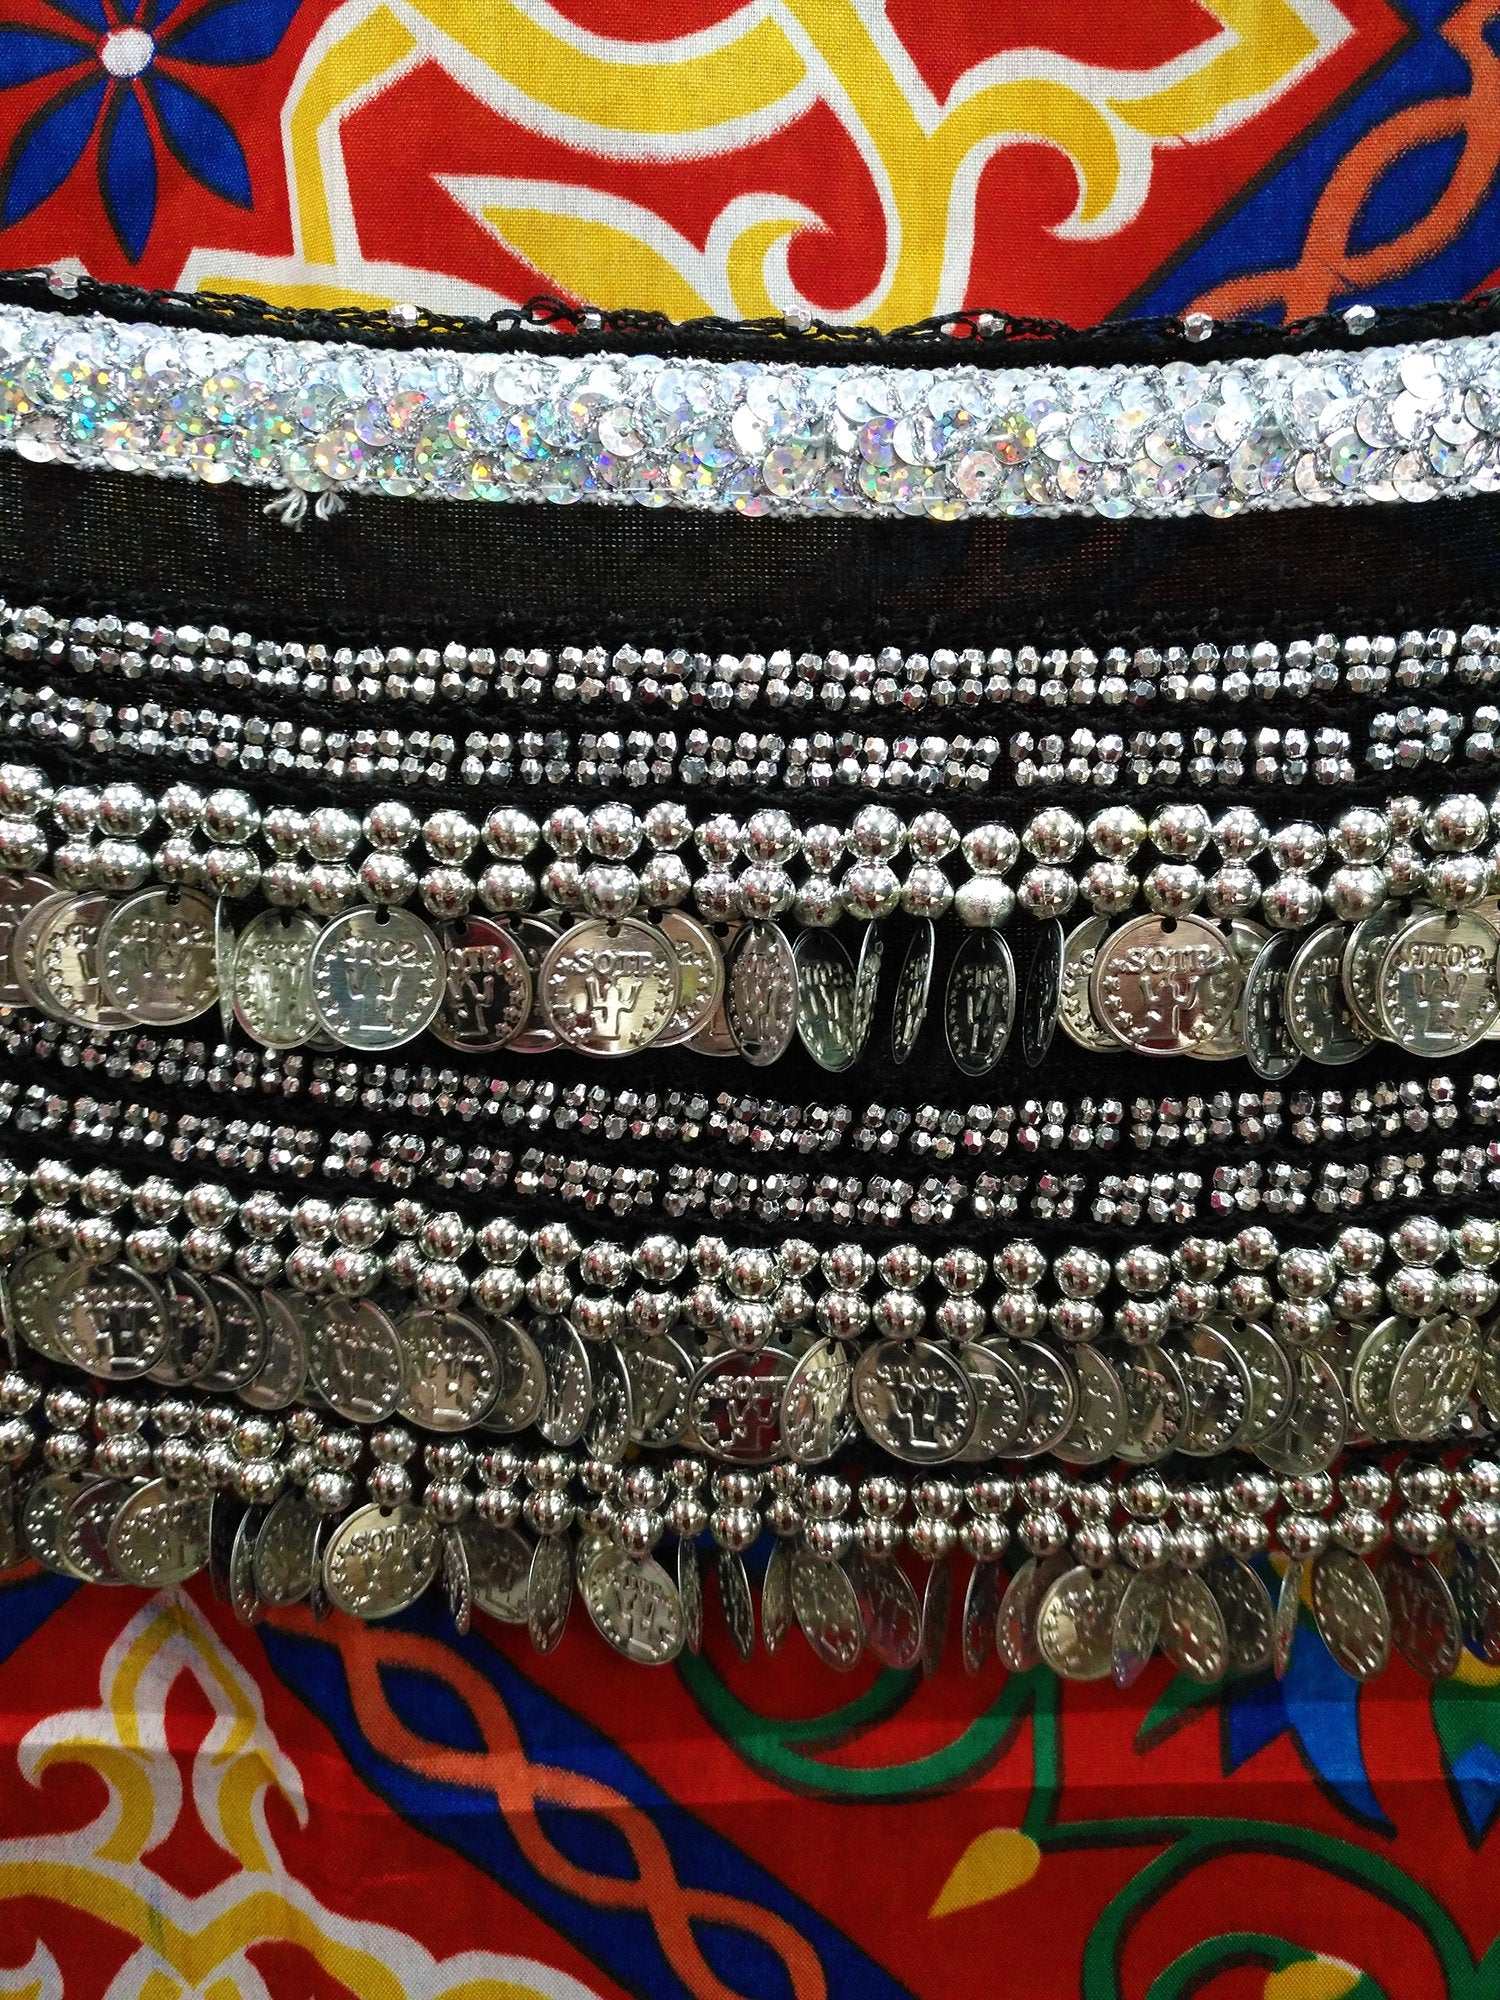 Egyptian Style Belly Dance Hip Scarf - Black Velvet Coin Belt for Belly Dancing with Sparkly Sequin Band & Over 300 coins!